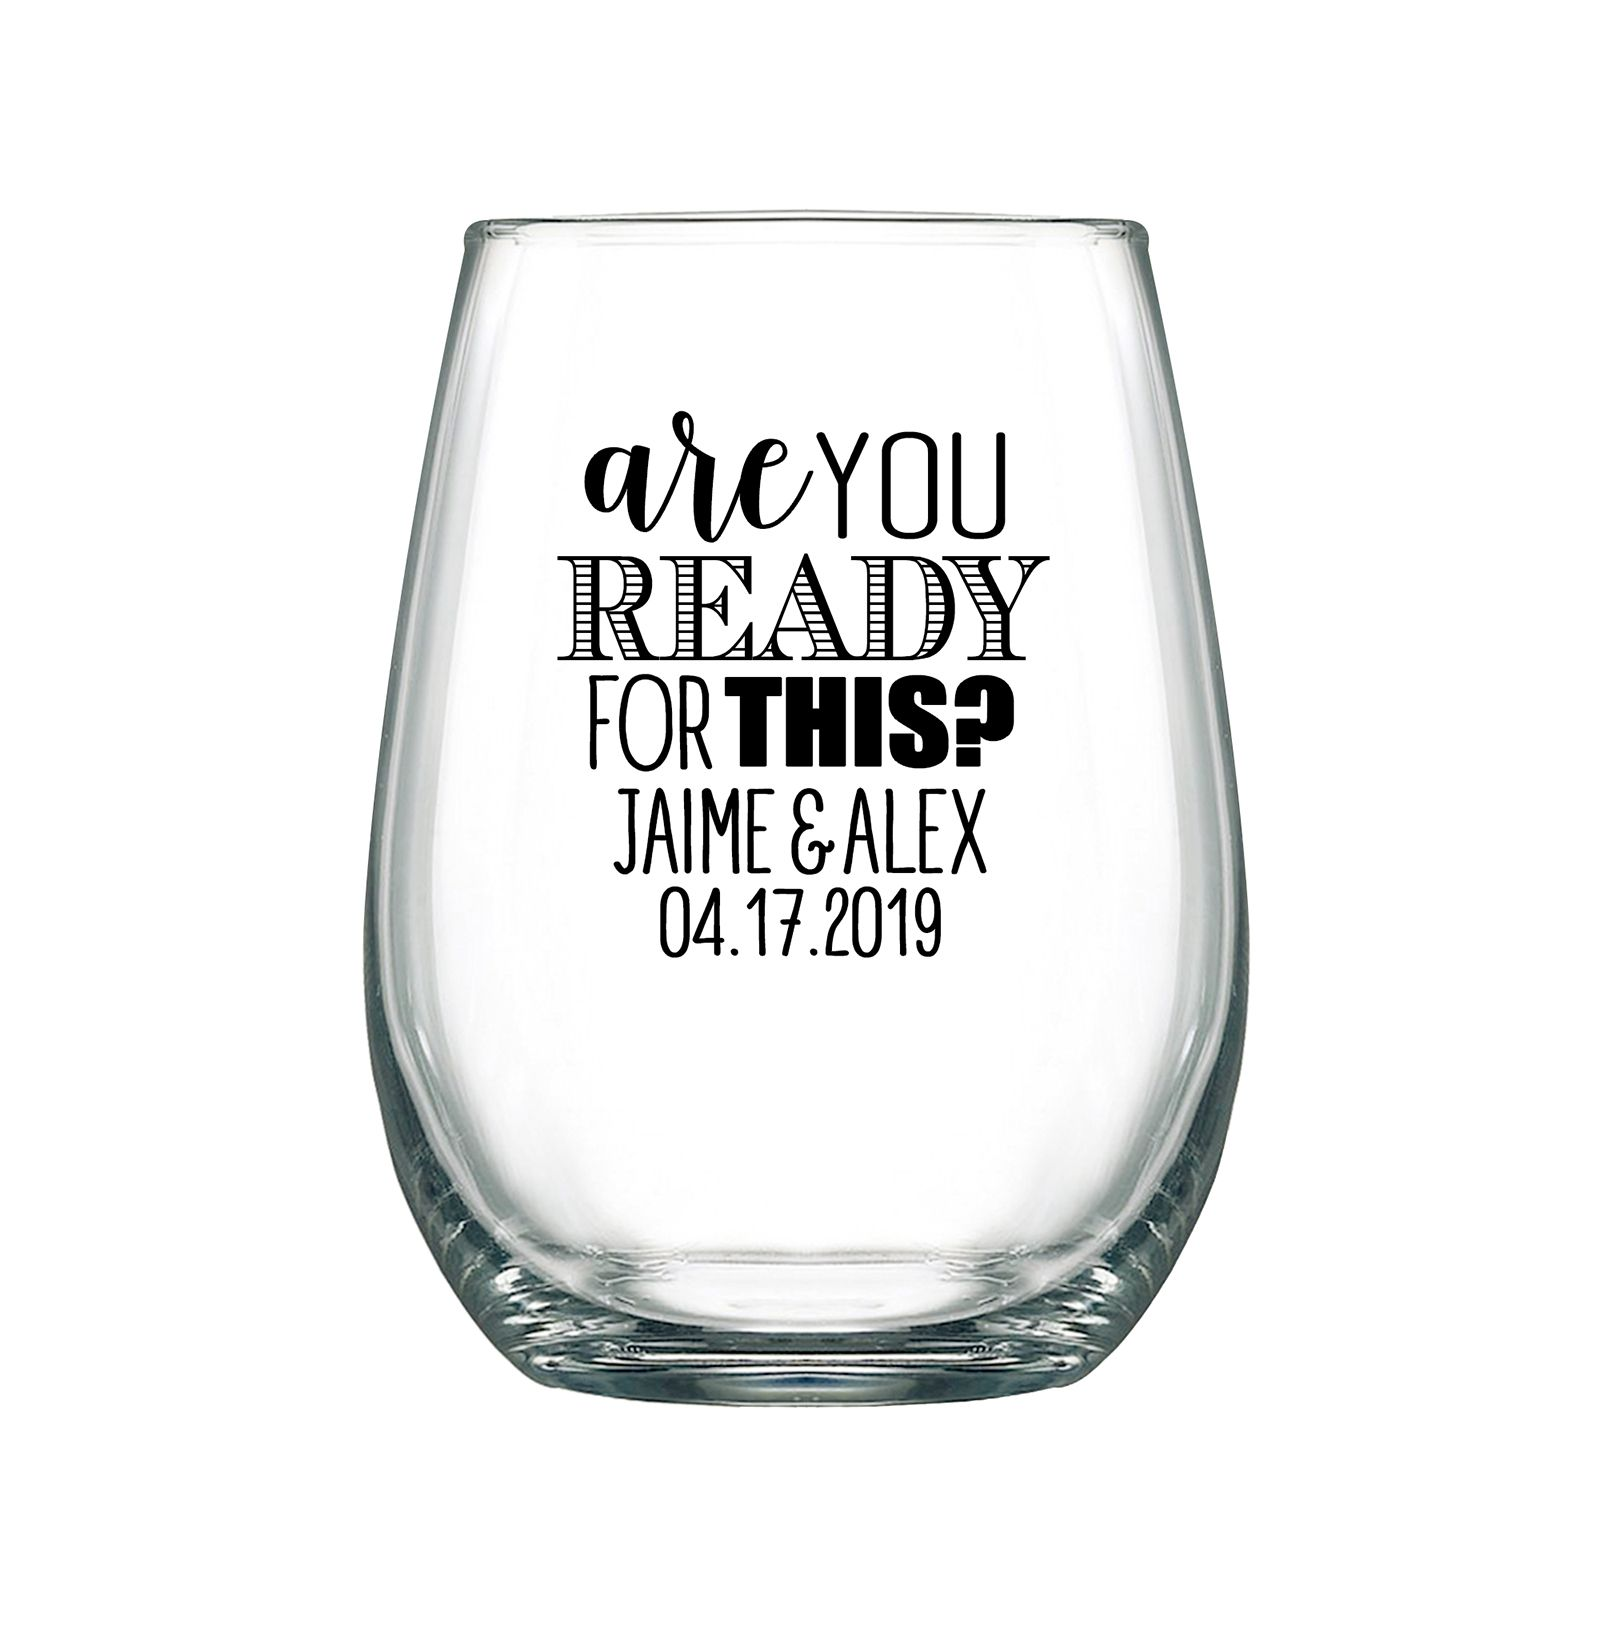 Wedding Gifts For Relatives: Personalized Stemless Wedding Wine Glasses Chic Wedding